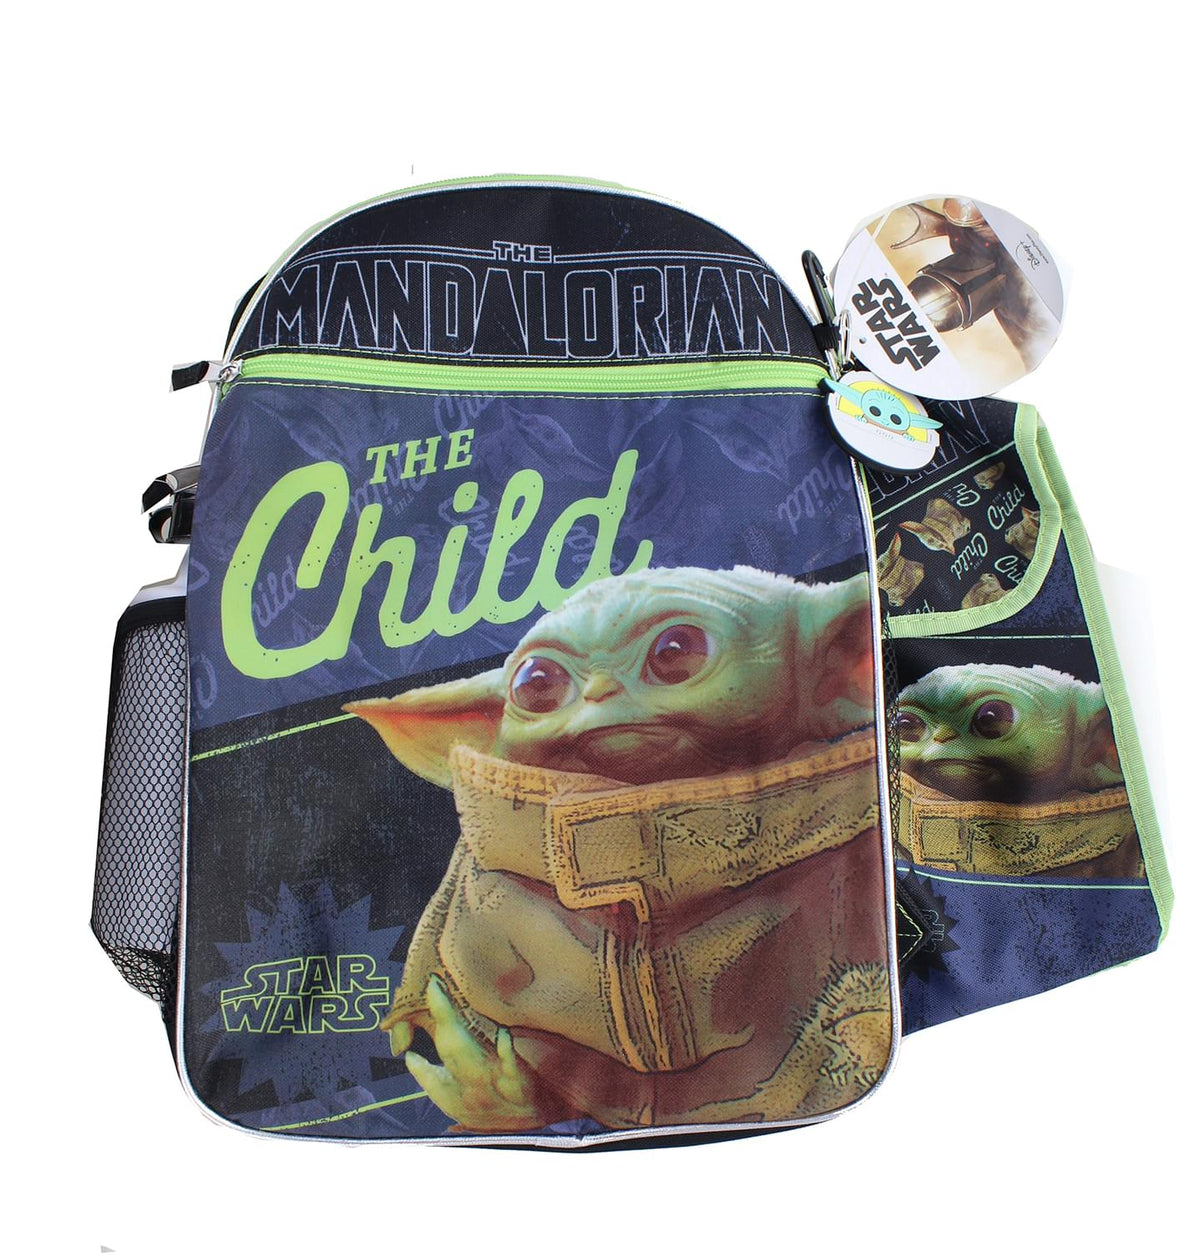 Star Wars The Mandalorian The Child 16 Inch Backpack 5-Piece Se